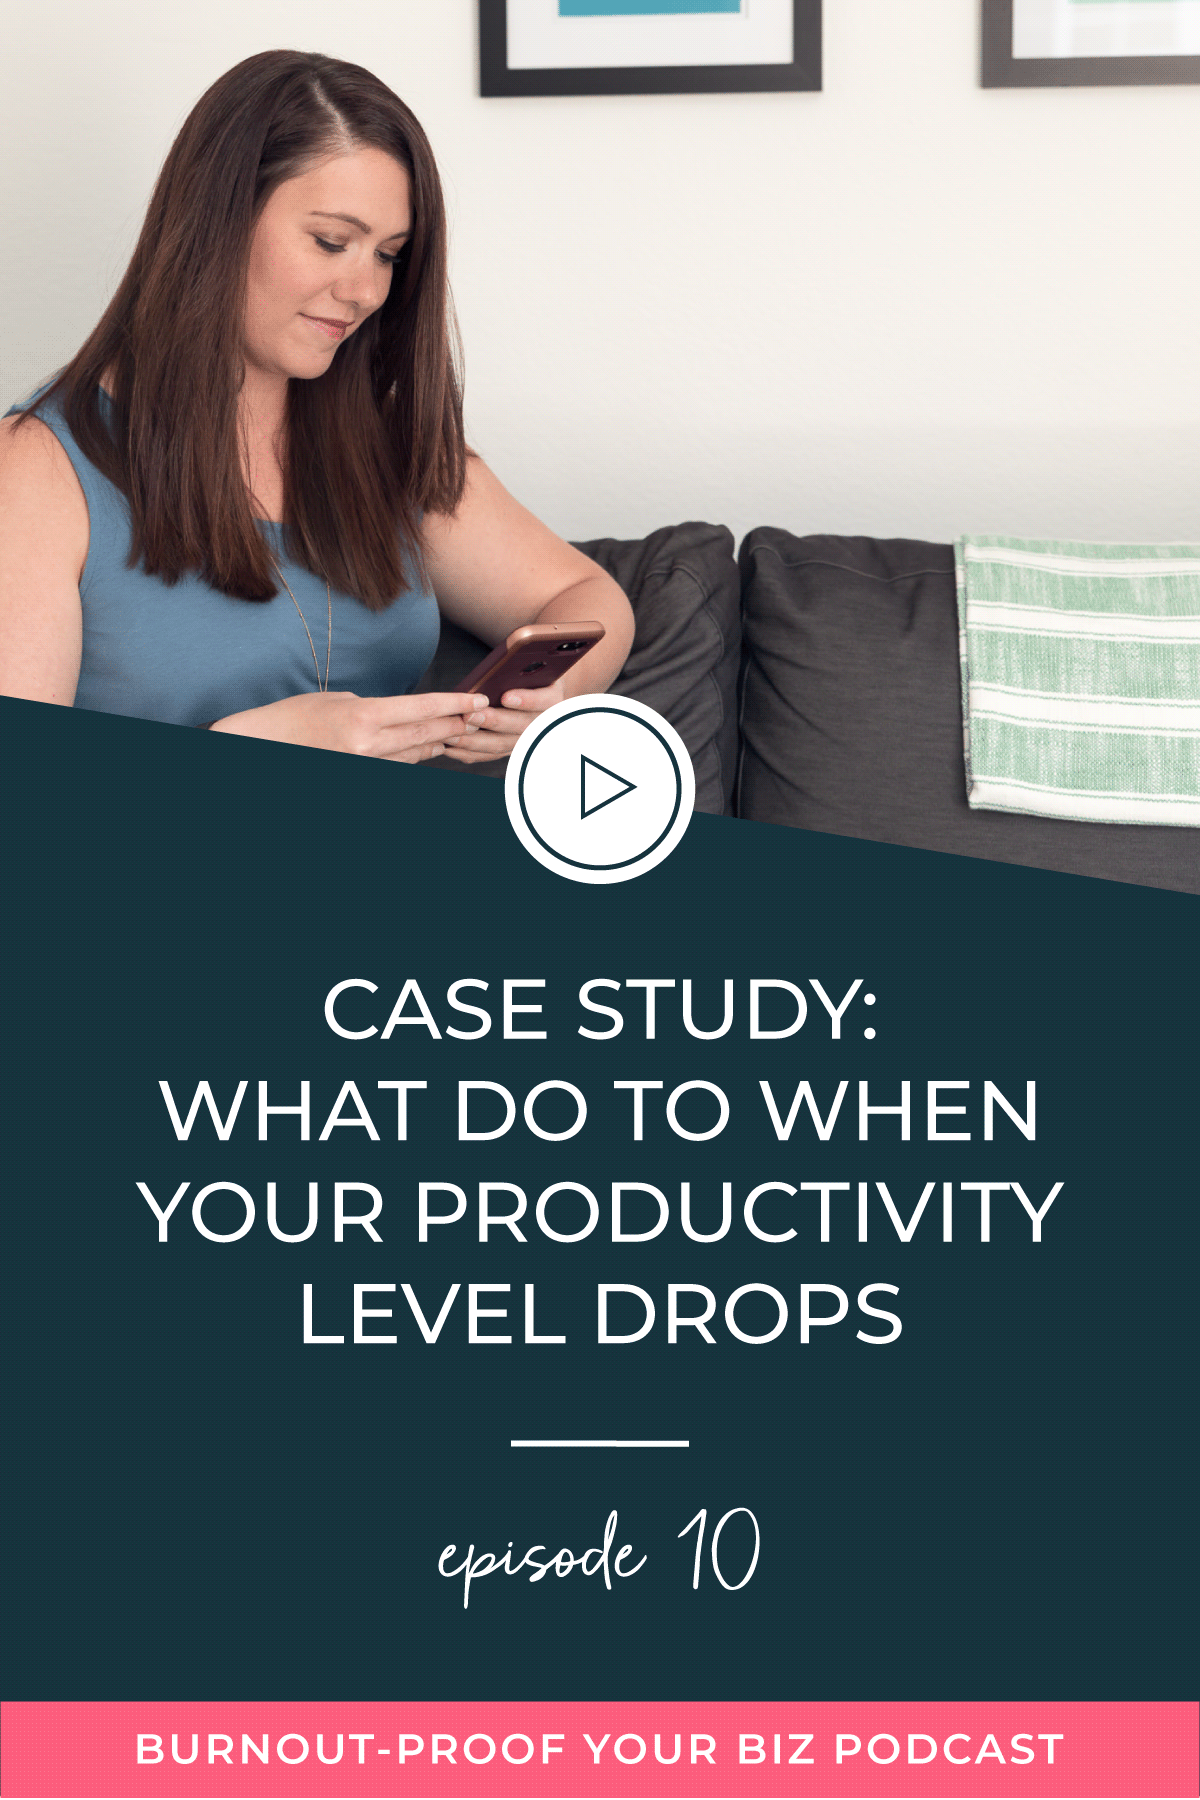 Burnout-Proof Your Biz Podcast with Chelsea B Foster | Episode 010 - Case Study: What To Do When Your Productivity Level Drops | Learn how to run your biz and live your dream life on your own terms without the fear of burnout.